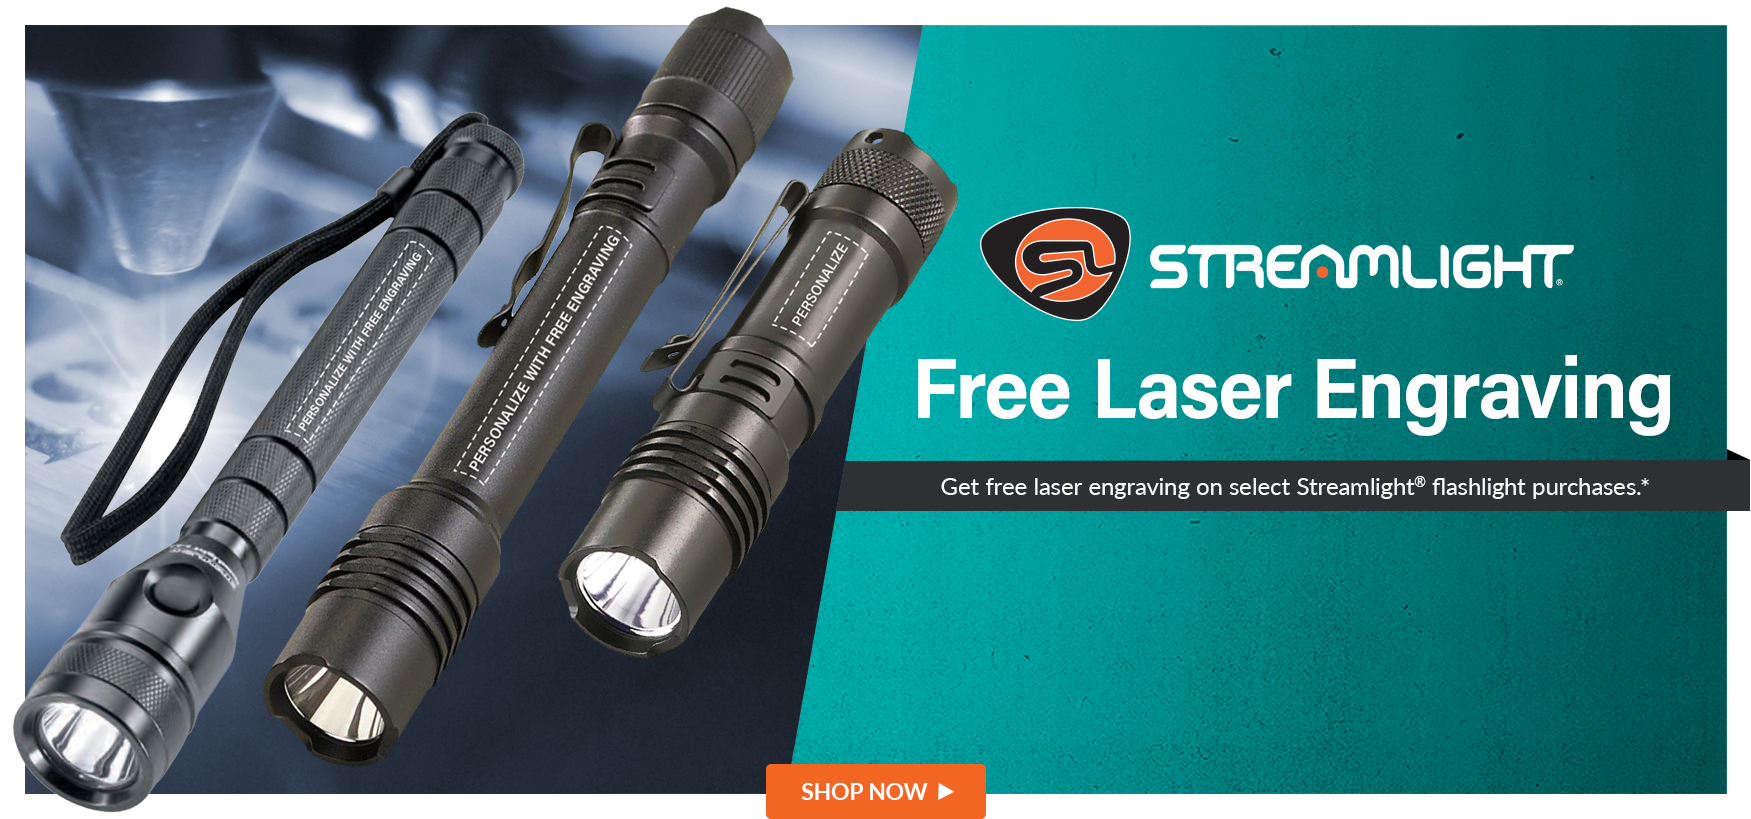 Free Engraving on Select Streamlight Flashlights, minimum order required